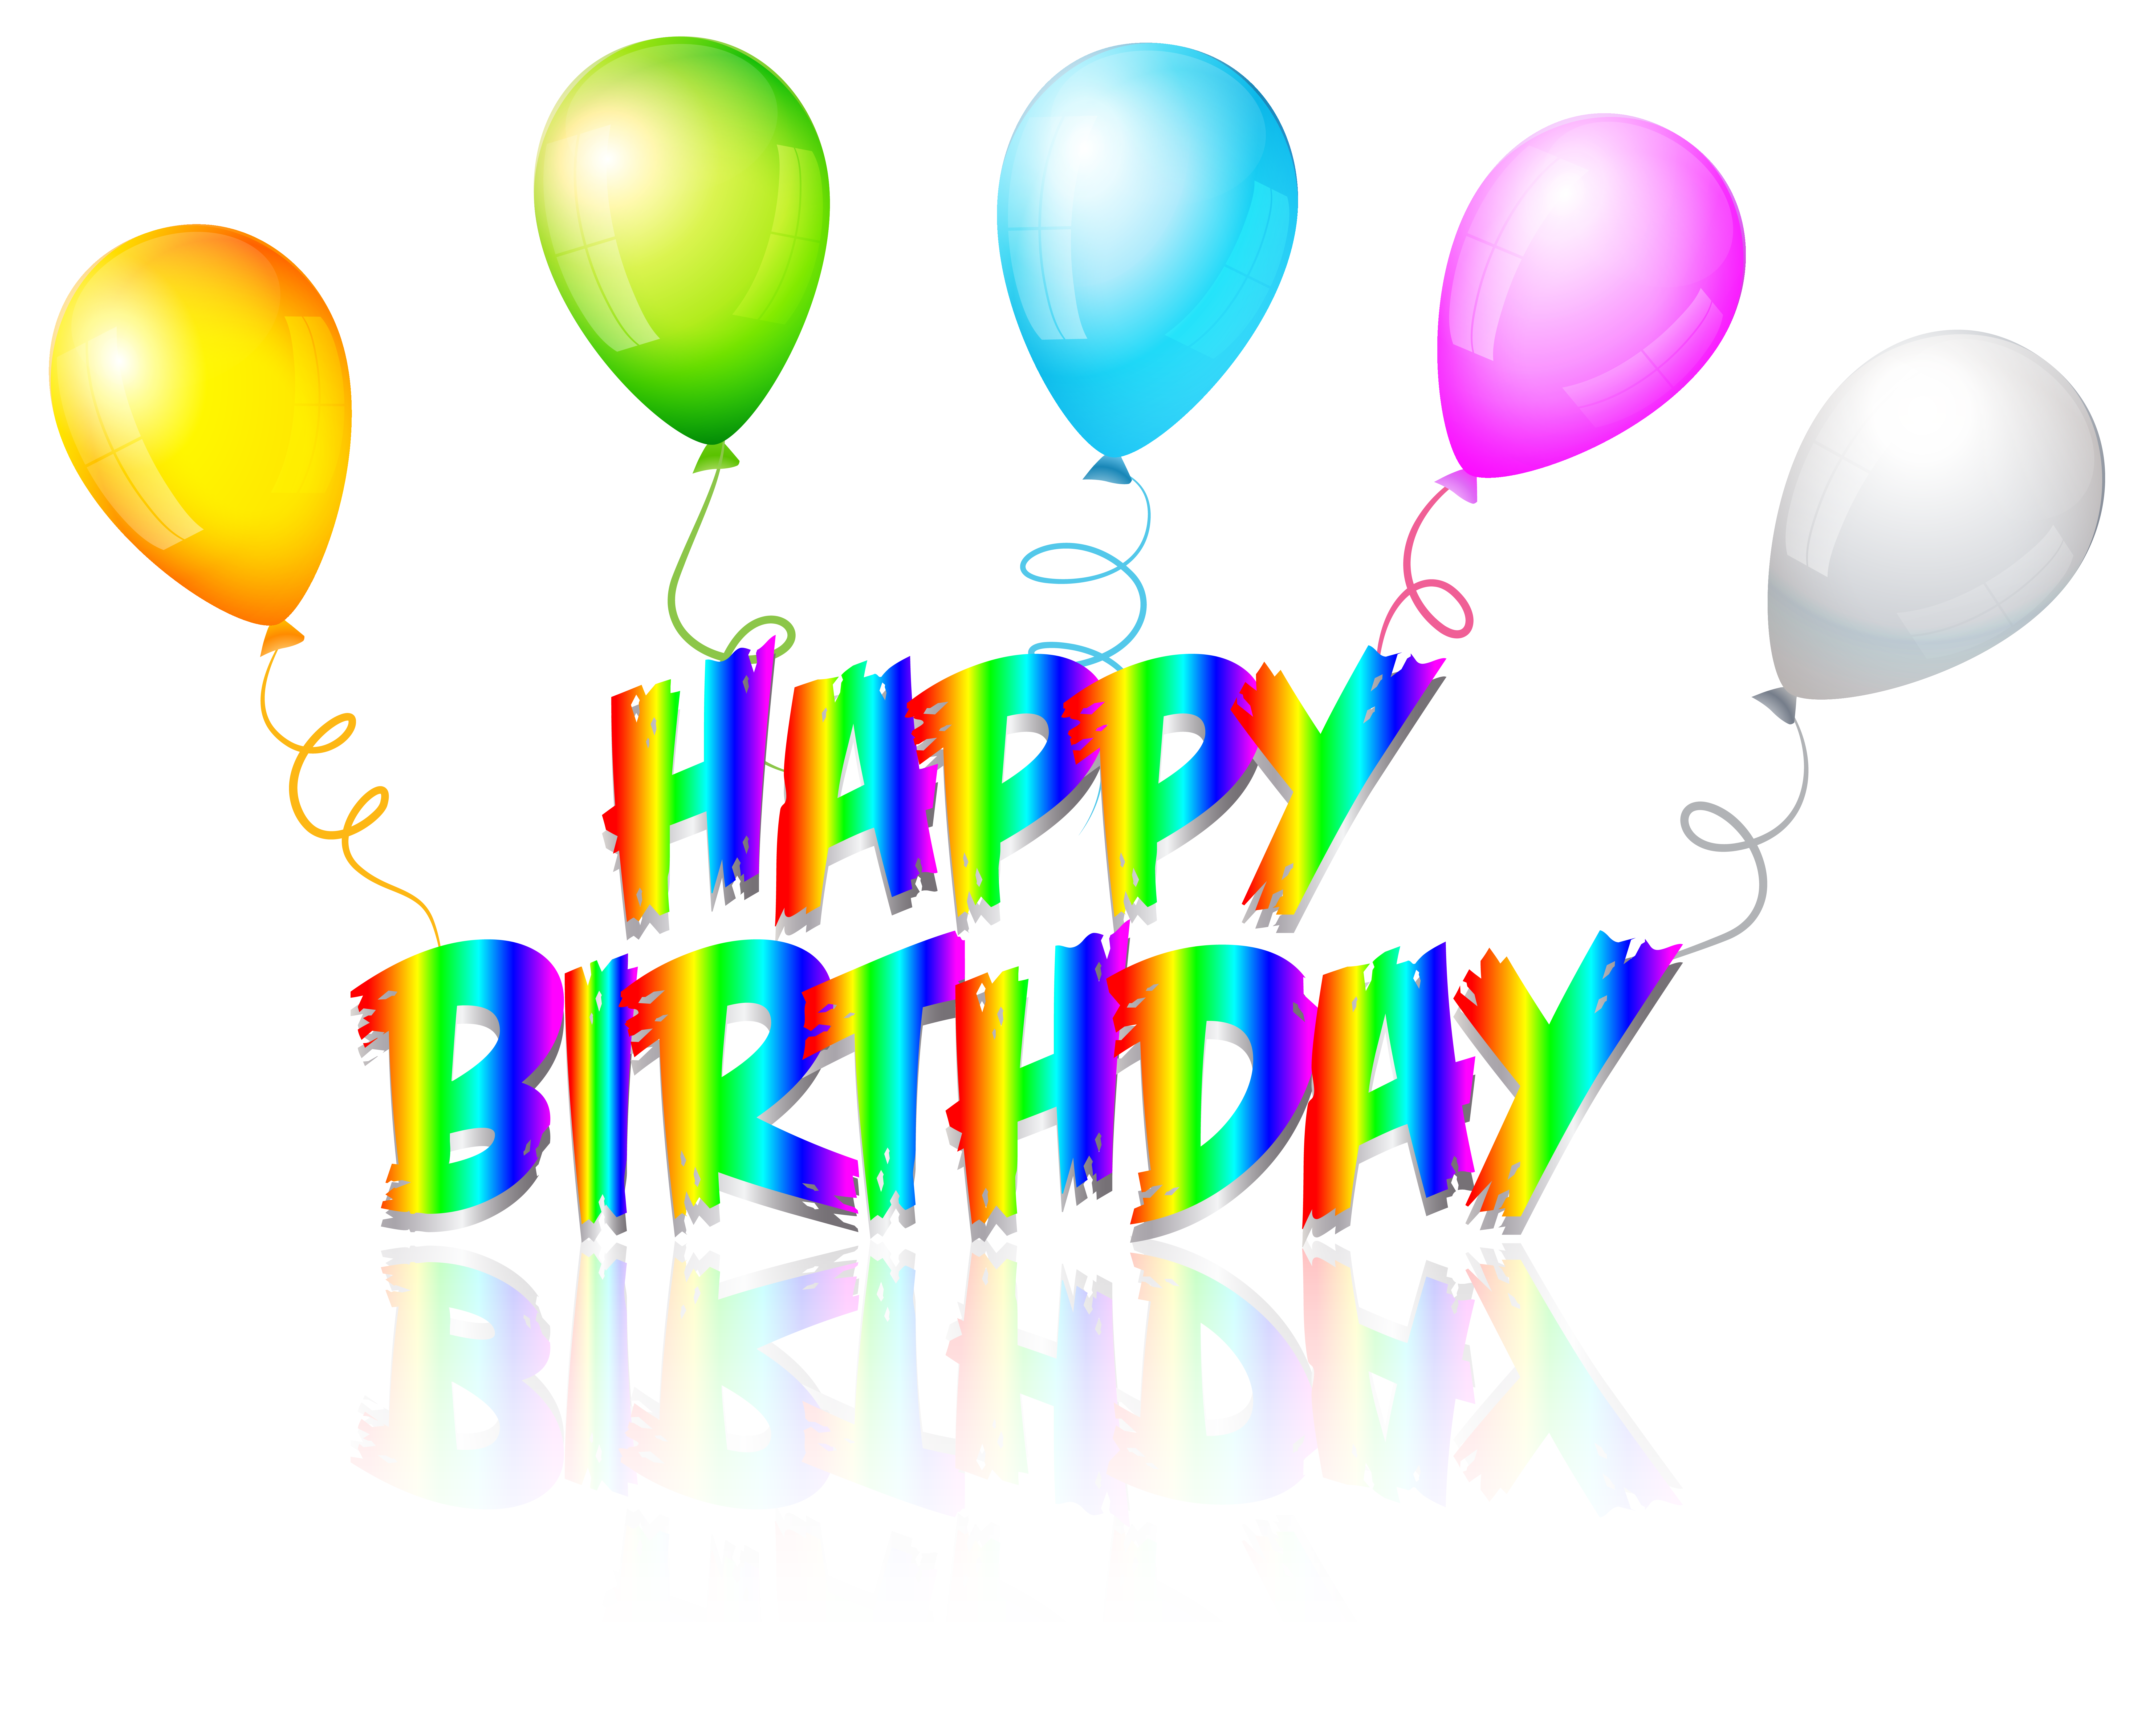 Clipart happy text. Rainbow birthday transparent png